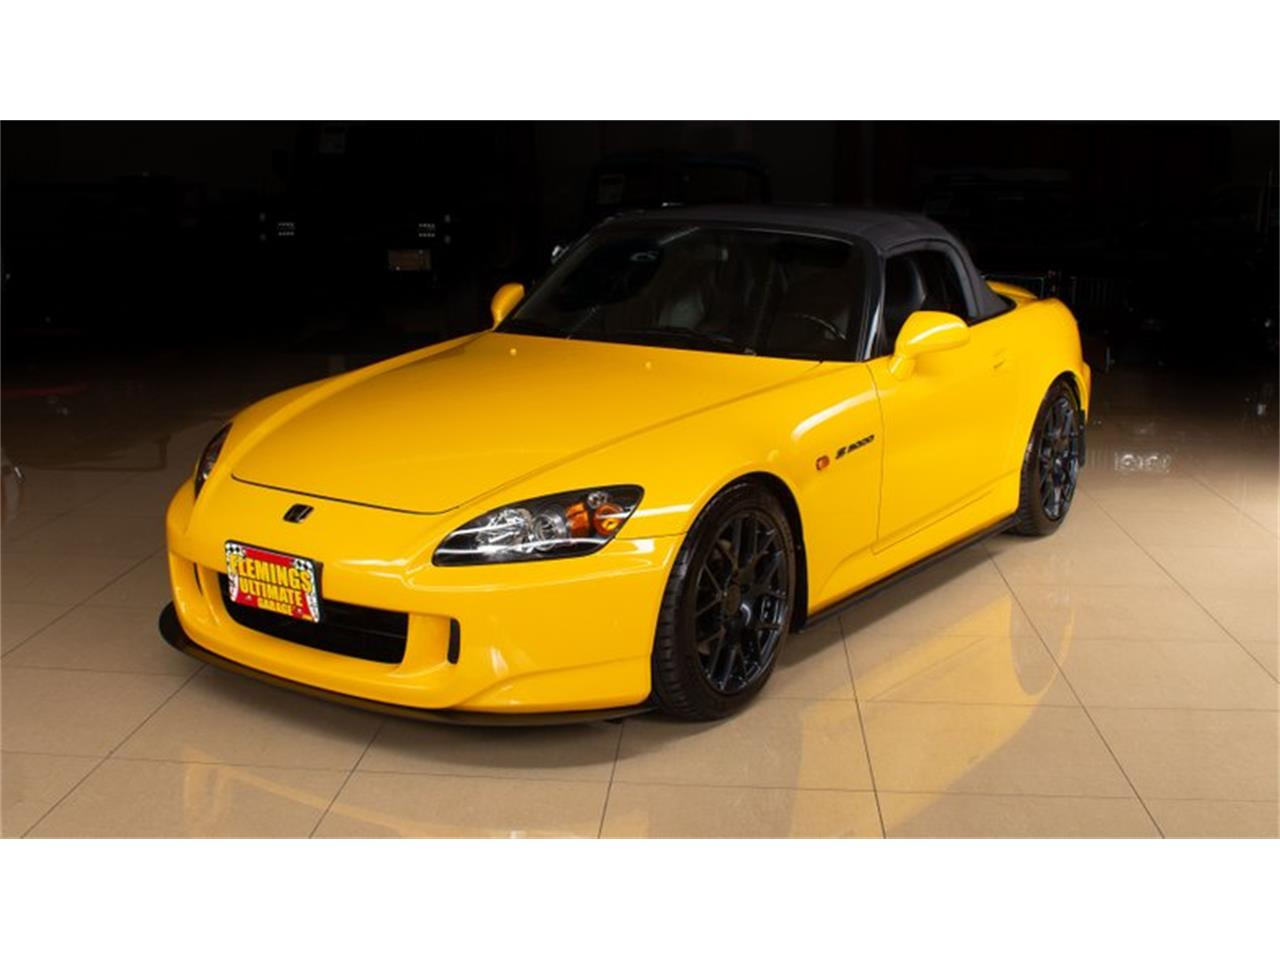 2004 Honda S2000 (CC-1386450) for sale in Rockville, Maryland